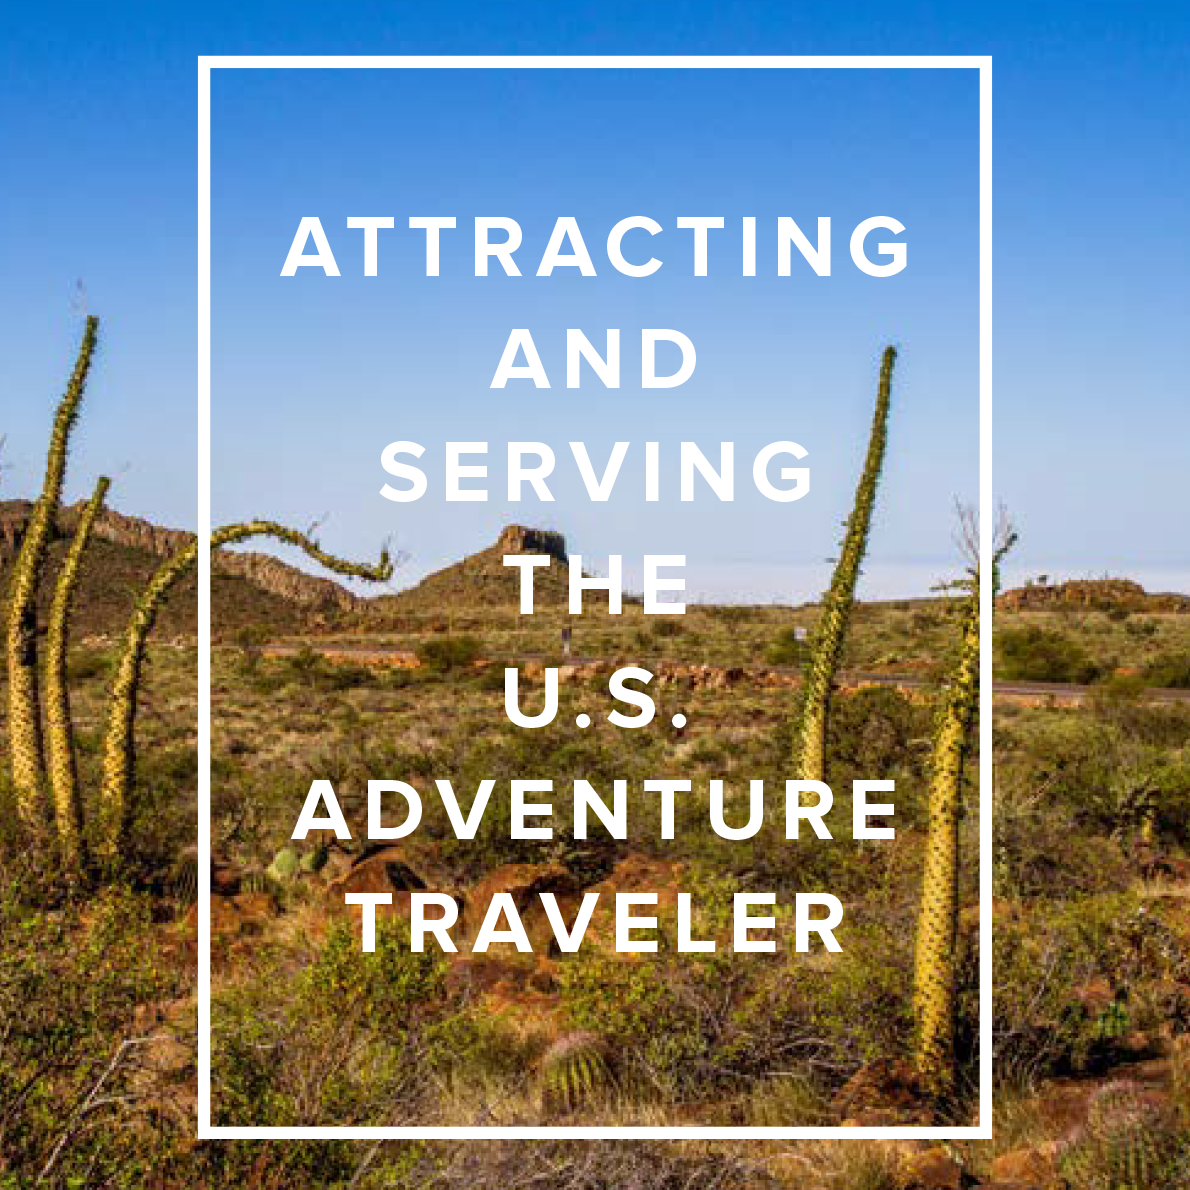 Adventure Travel: Attracting And Serving The U.S. Adventure Traveler: New